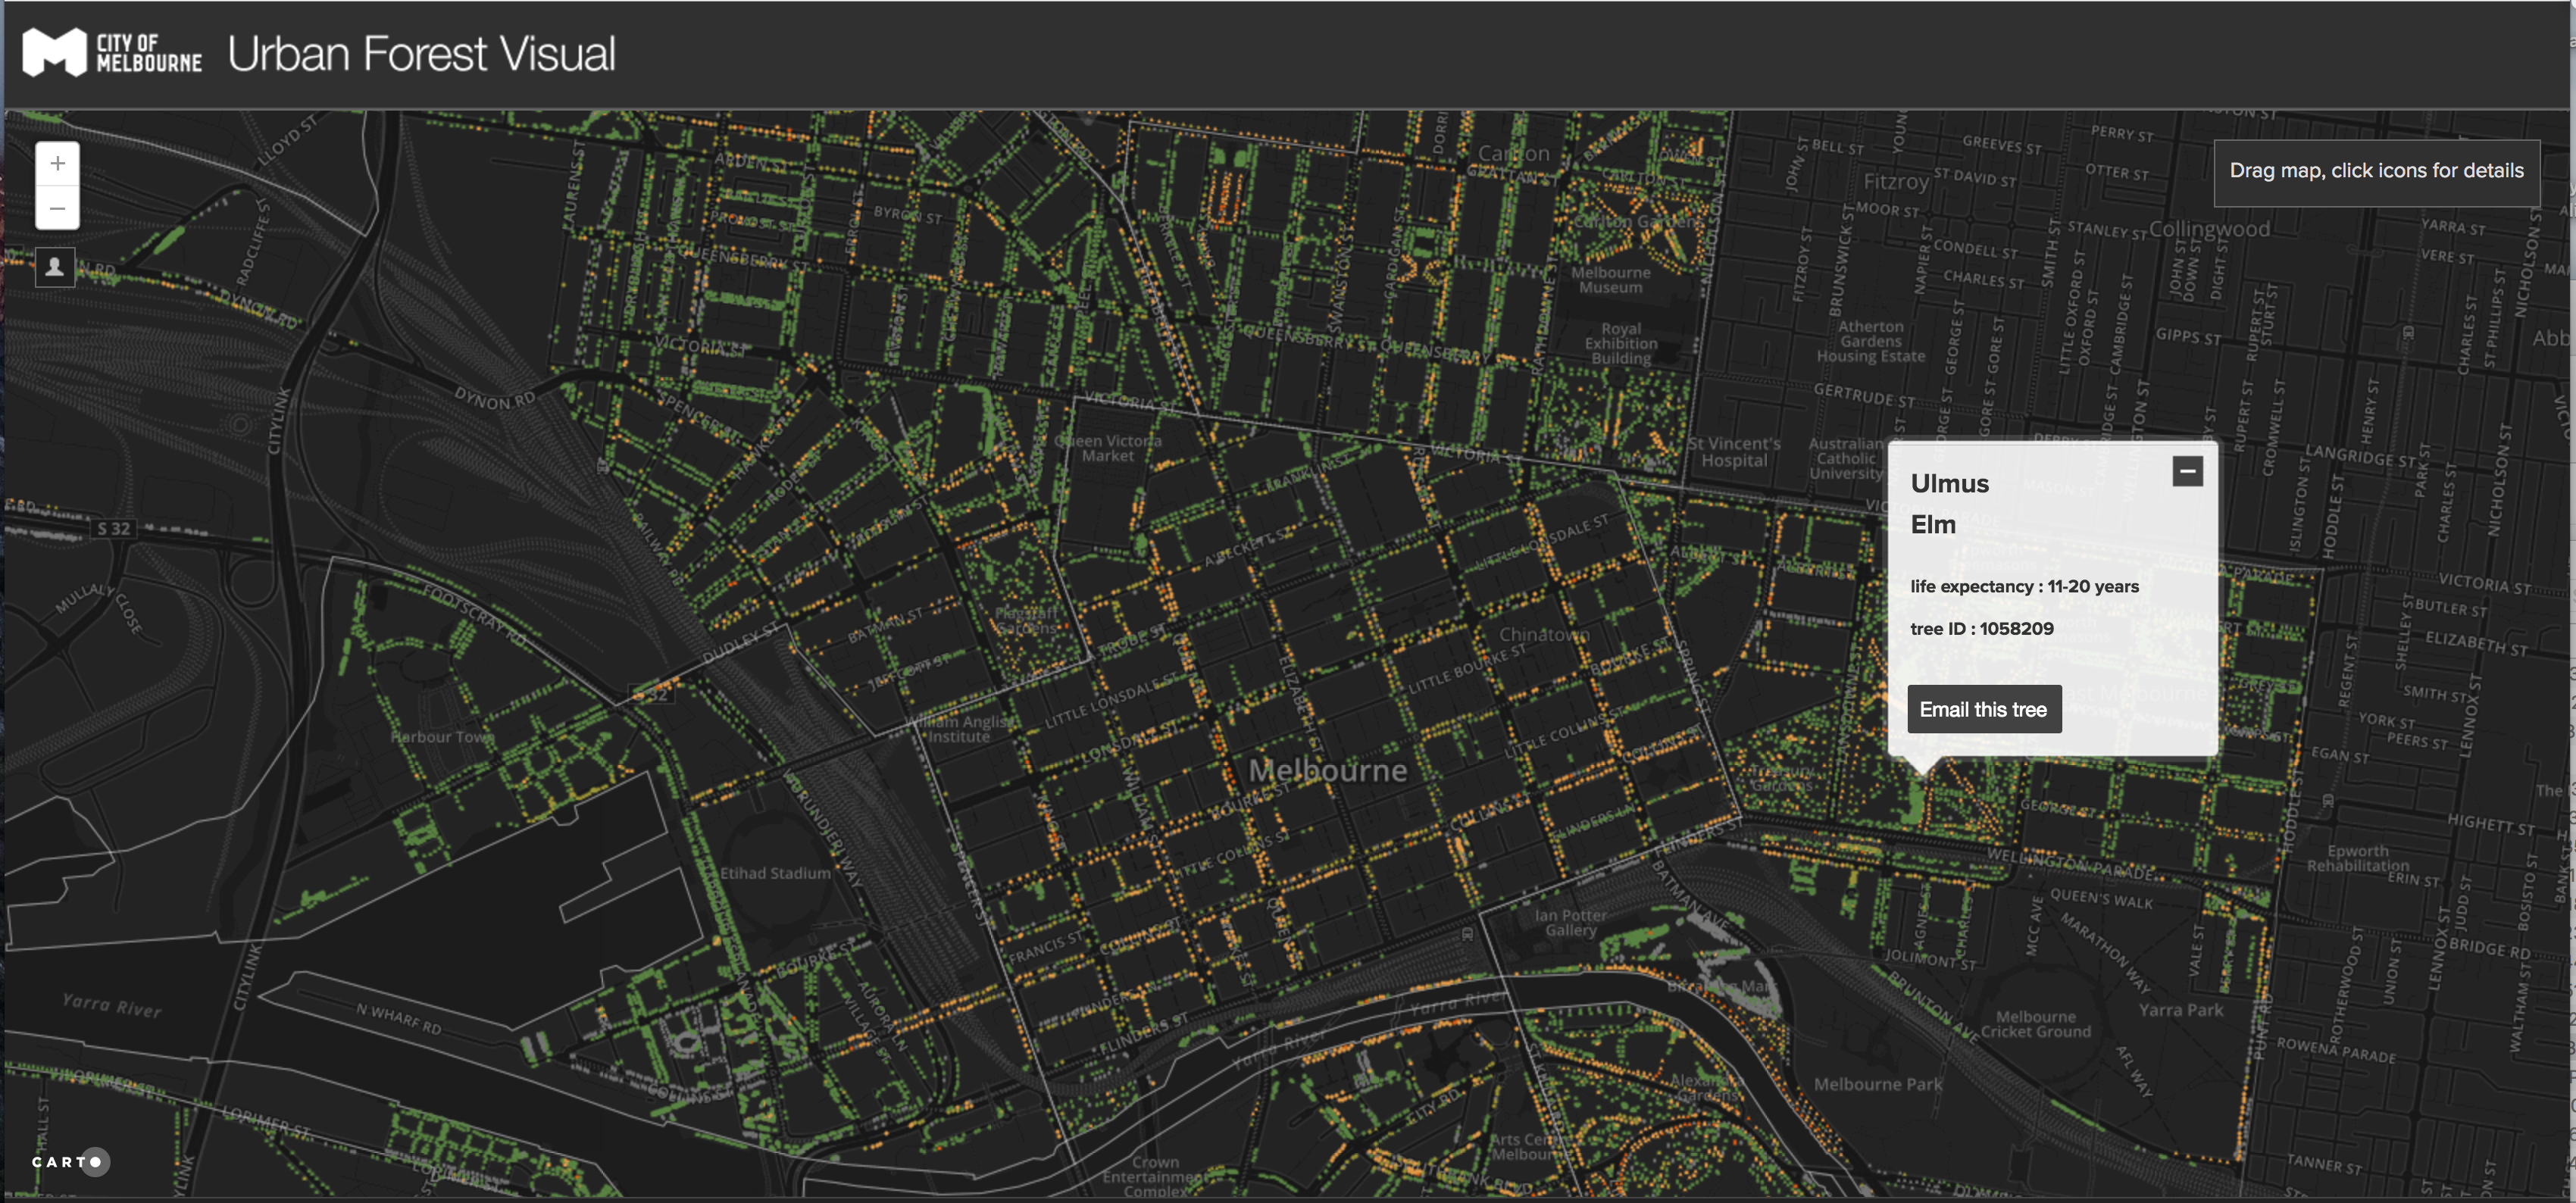 Melbourne's Urban Forest Map